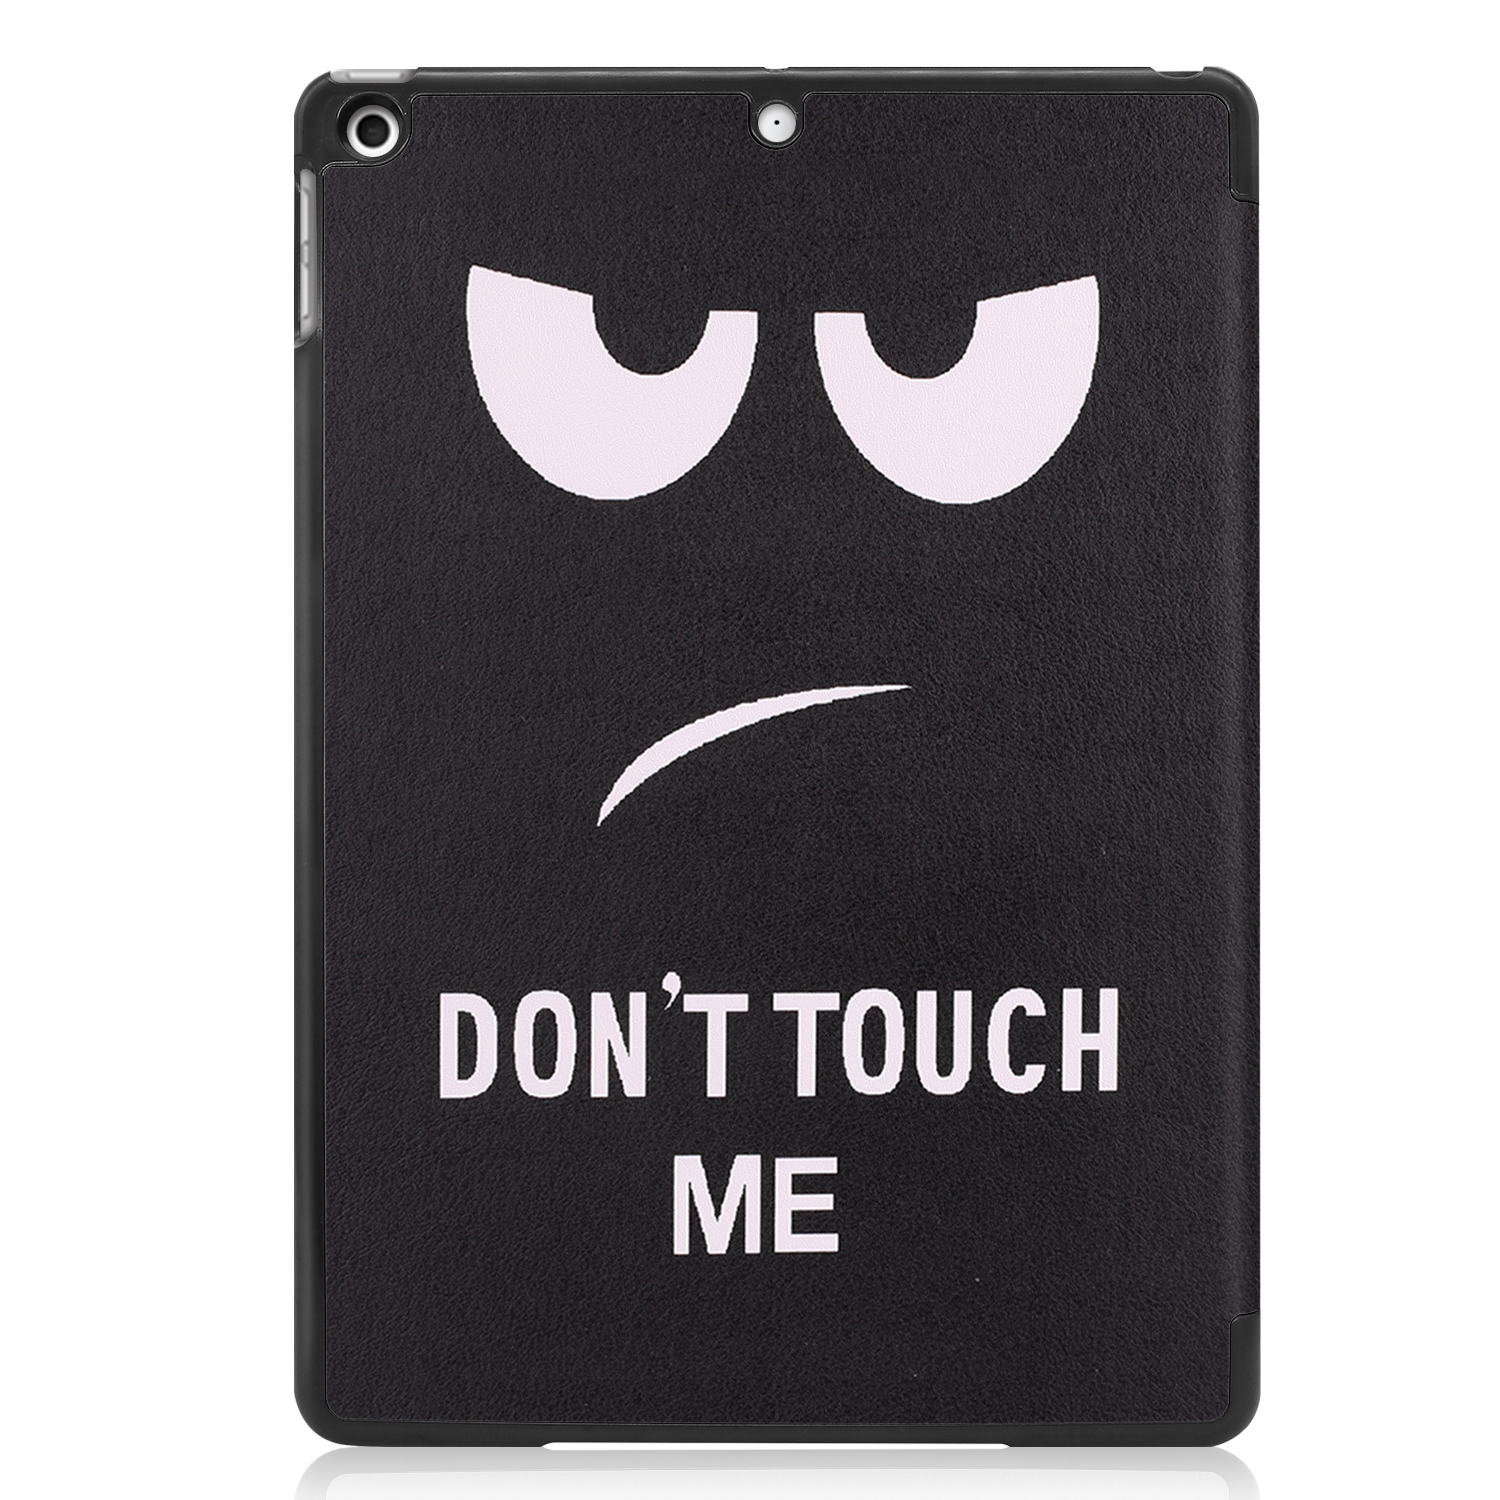 Magnetic iPad/8th/Cas Apple Case Smart-Cover Sleep iPad for A2428/a2429 8-8th-Generation